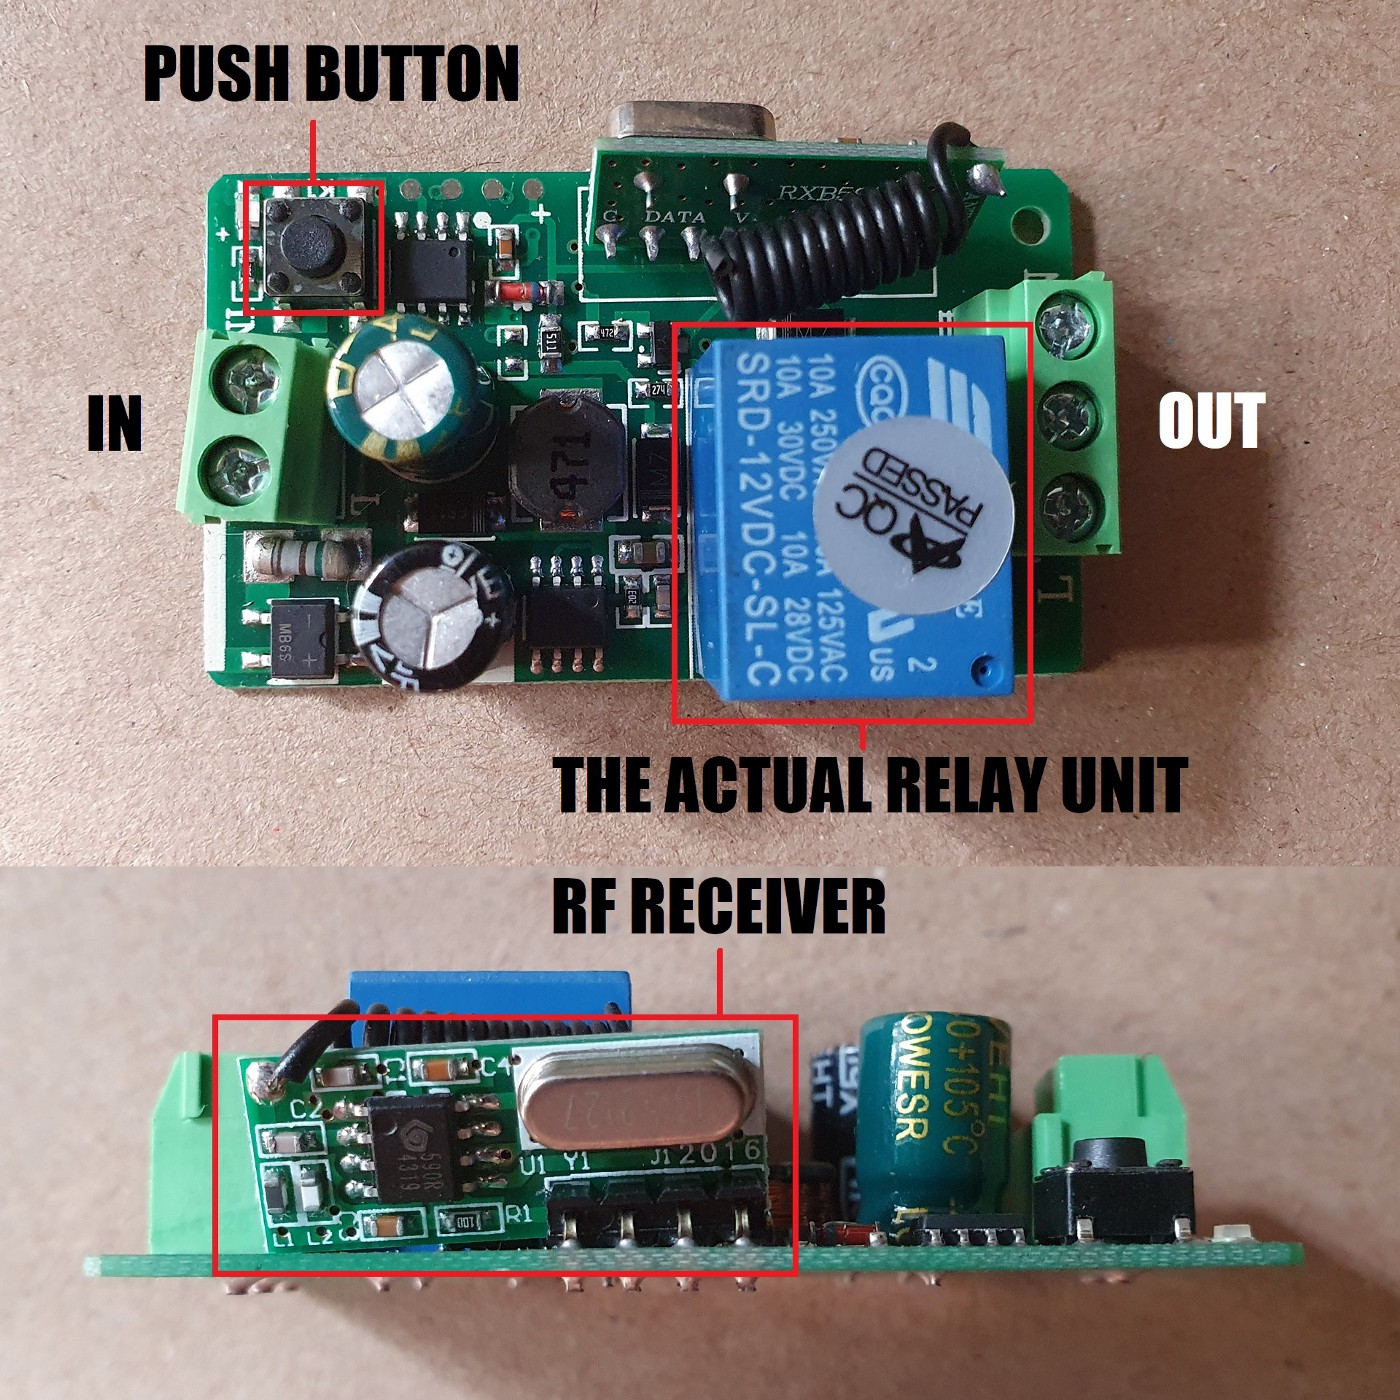 Top and side view of the circuit board